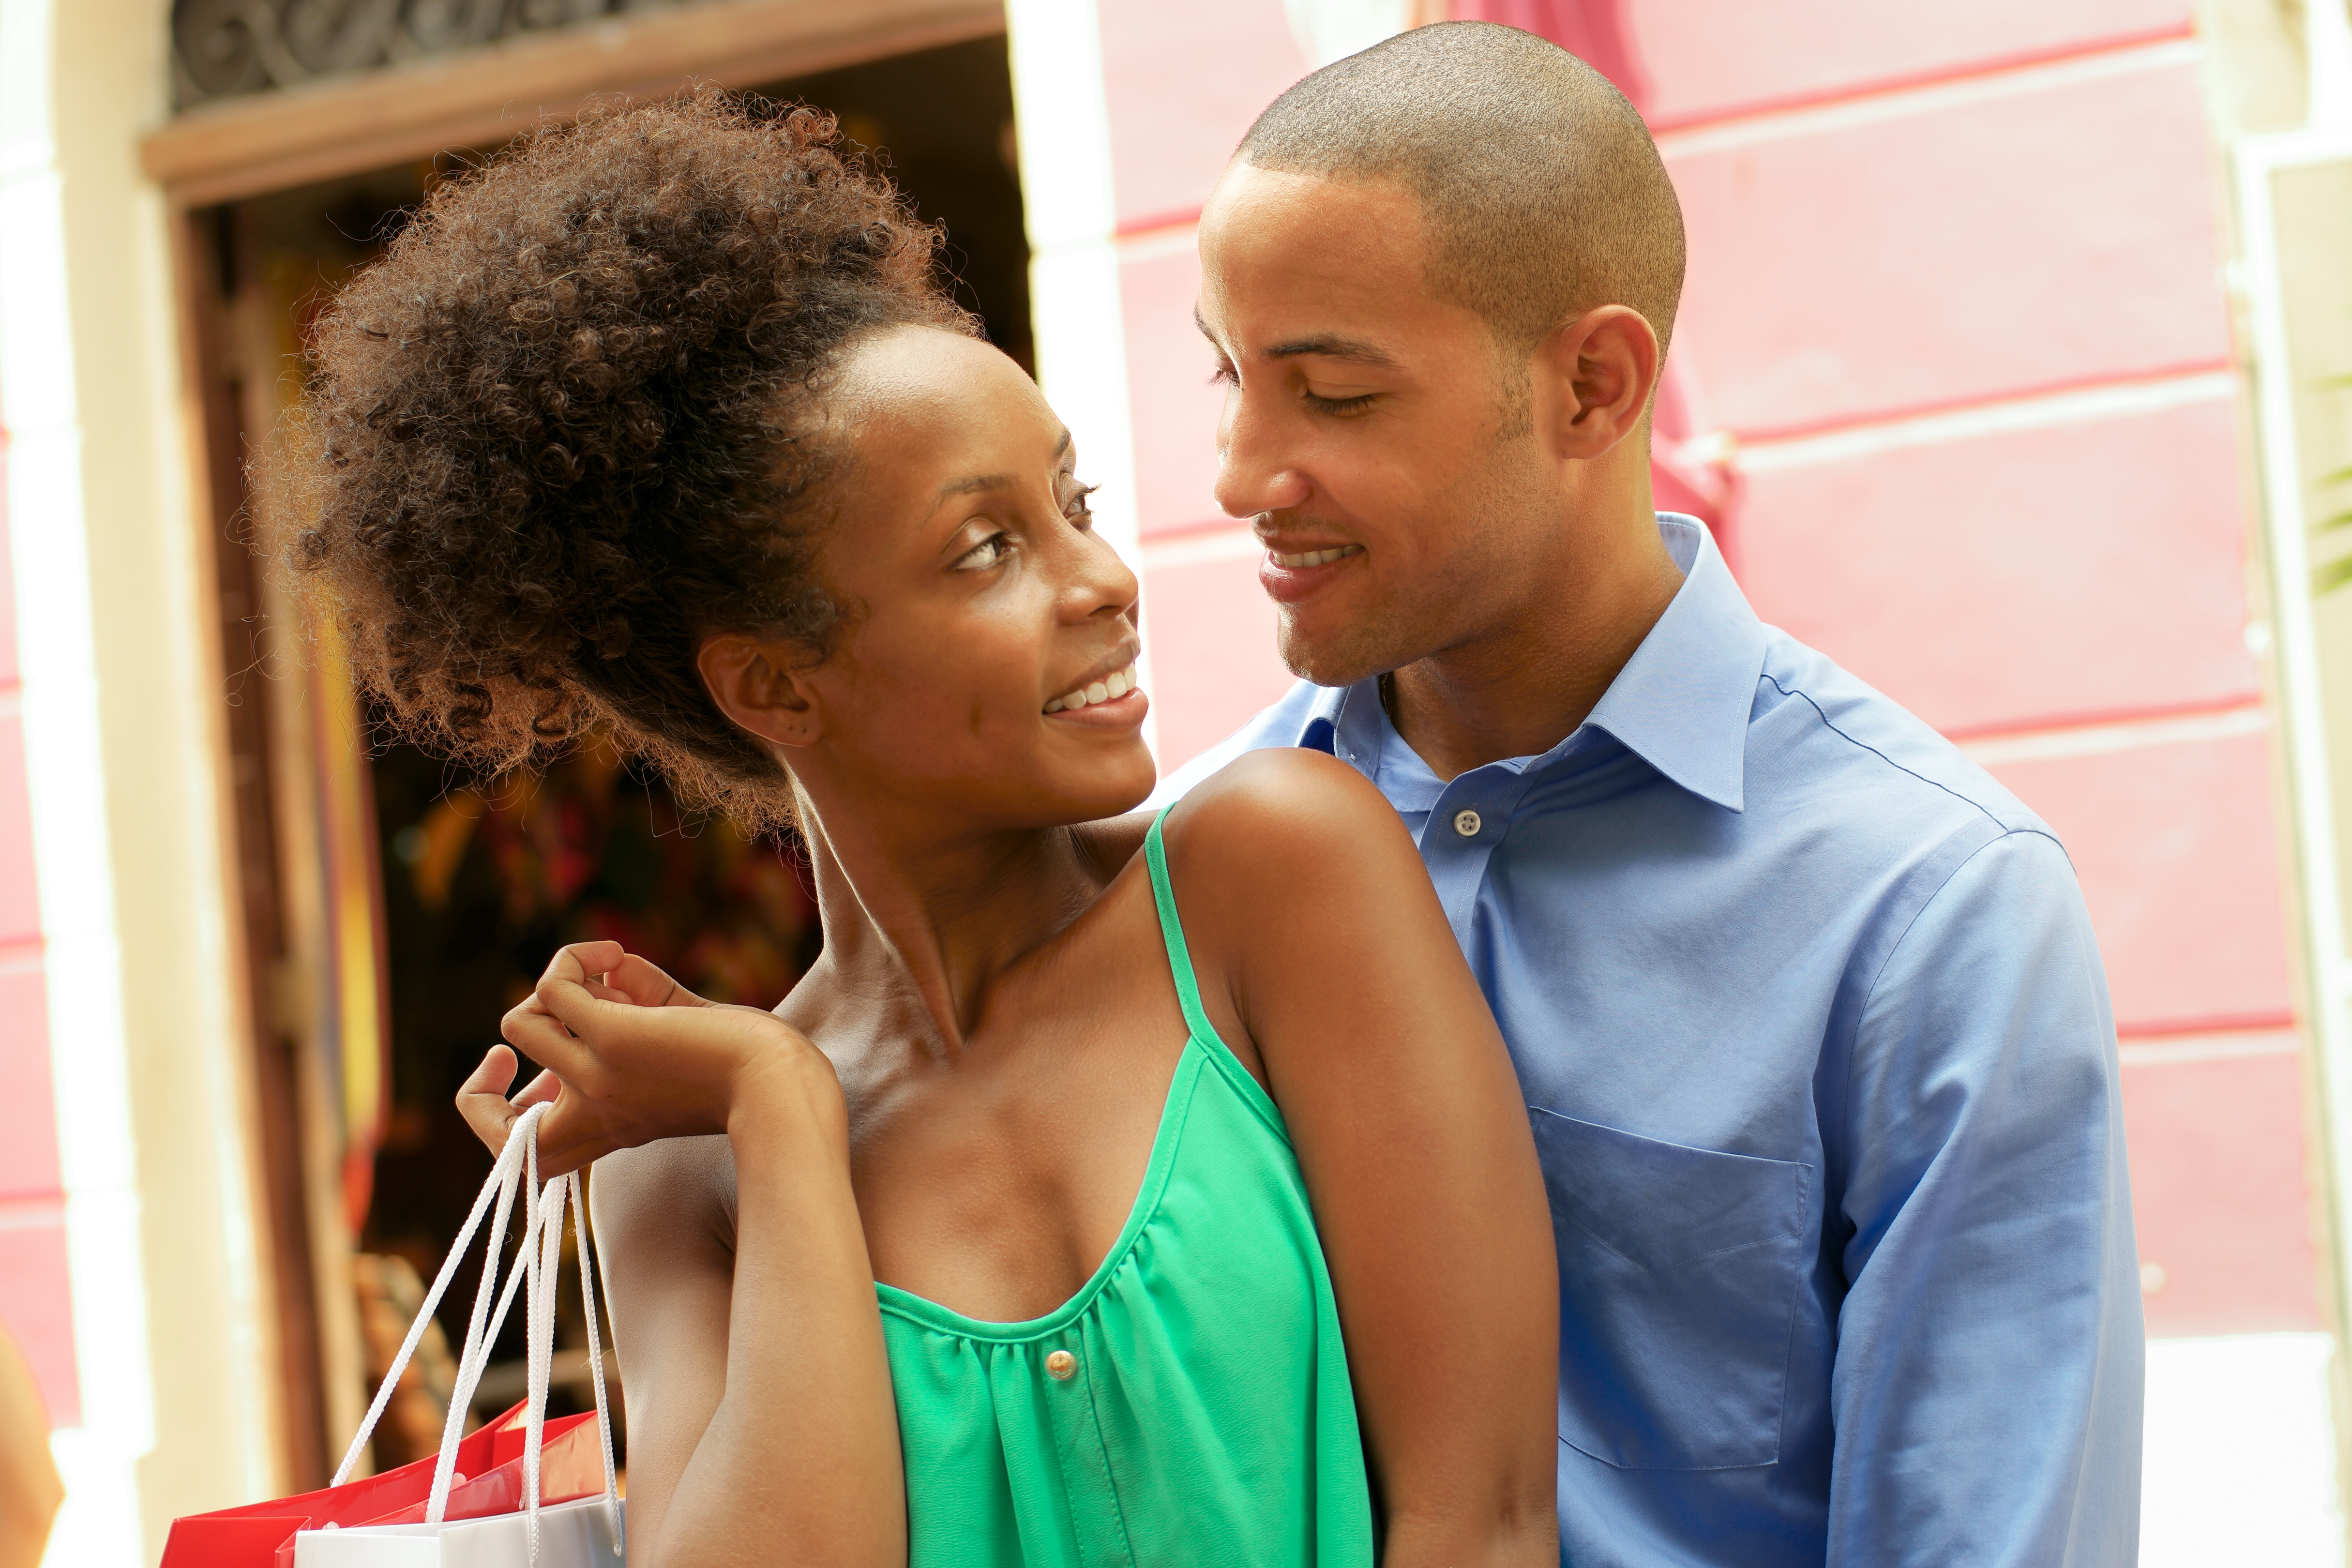 Who Pays For a First Date?: Why It Matters